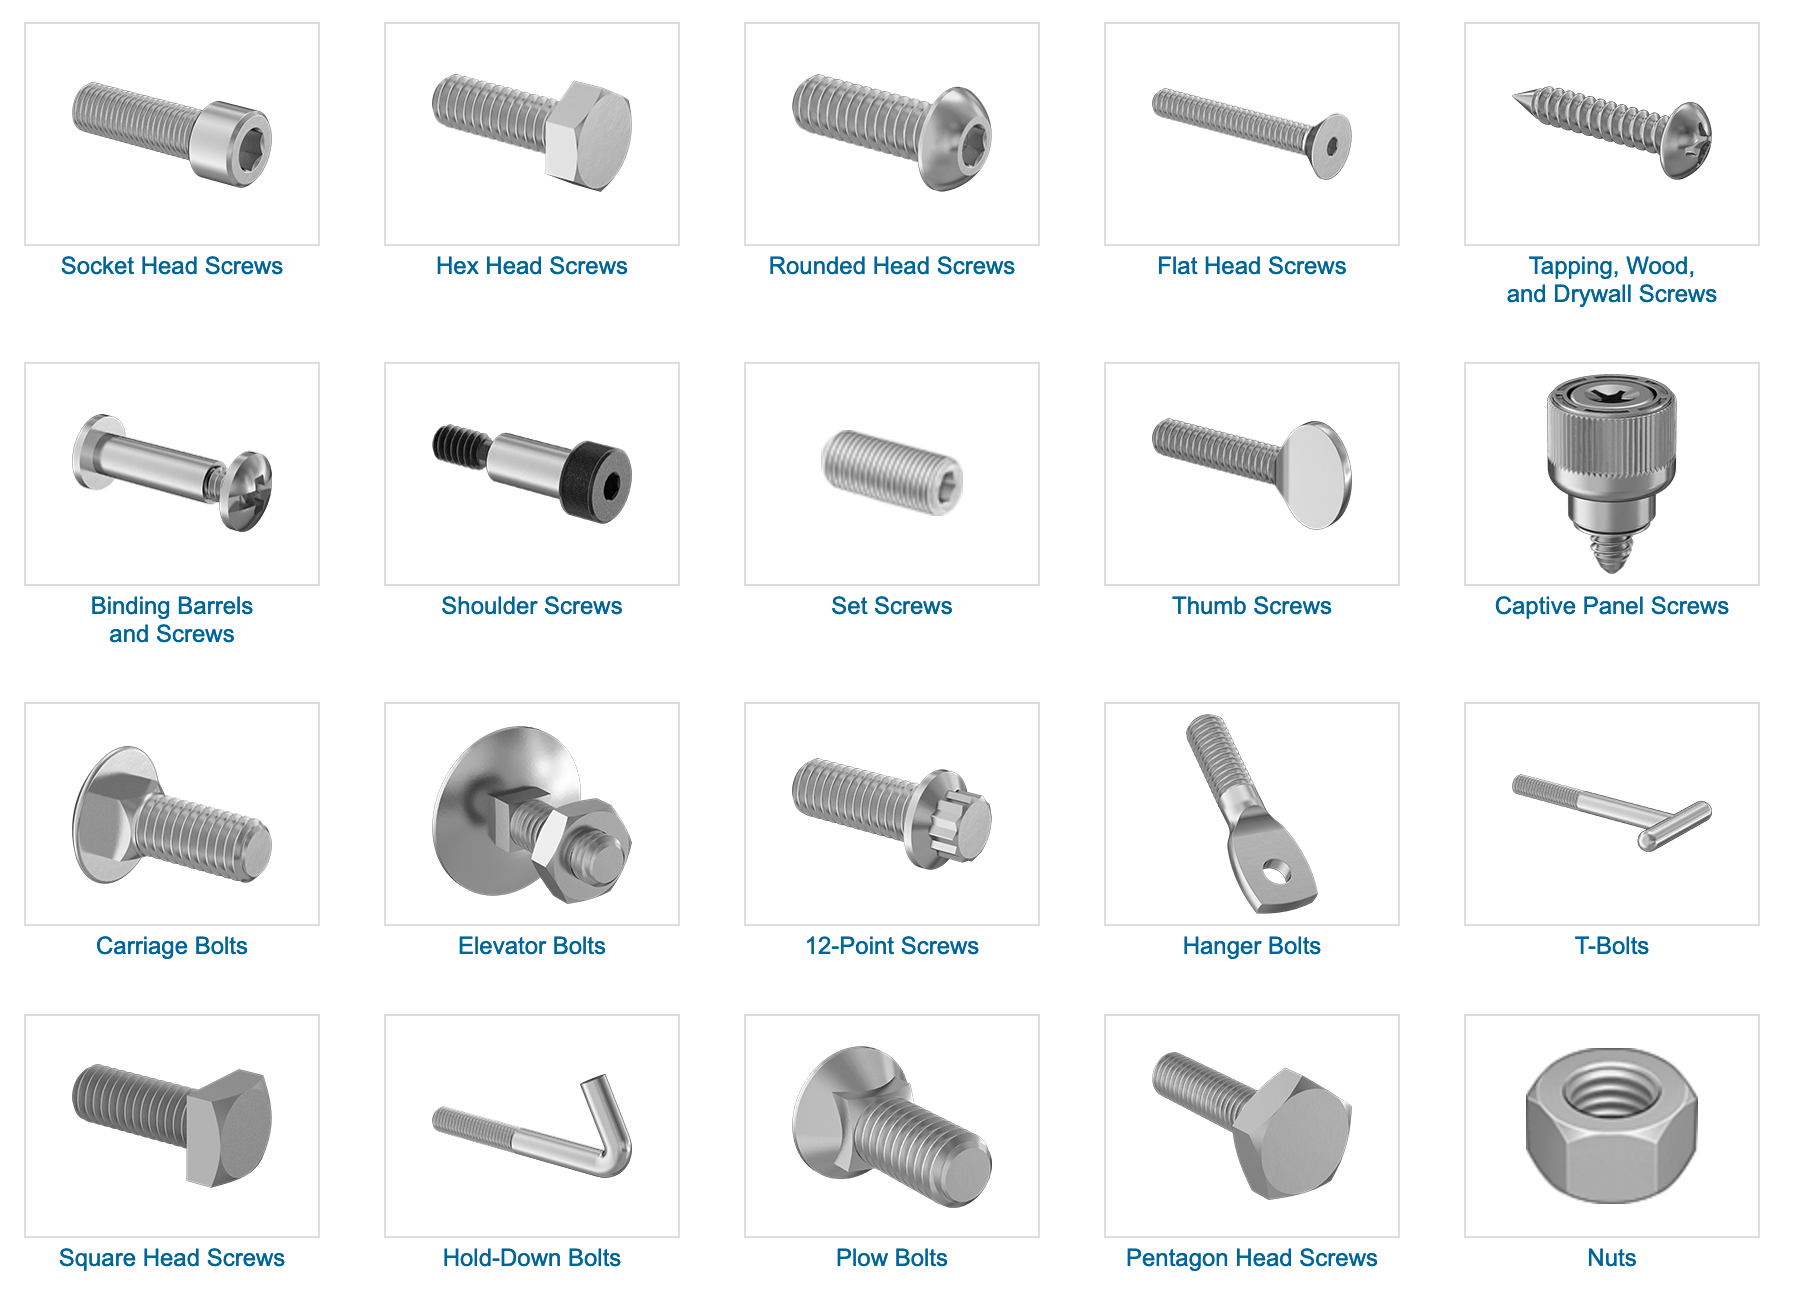 Image source:  https://www.mcmaster.com/fasteners